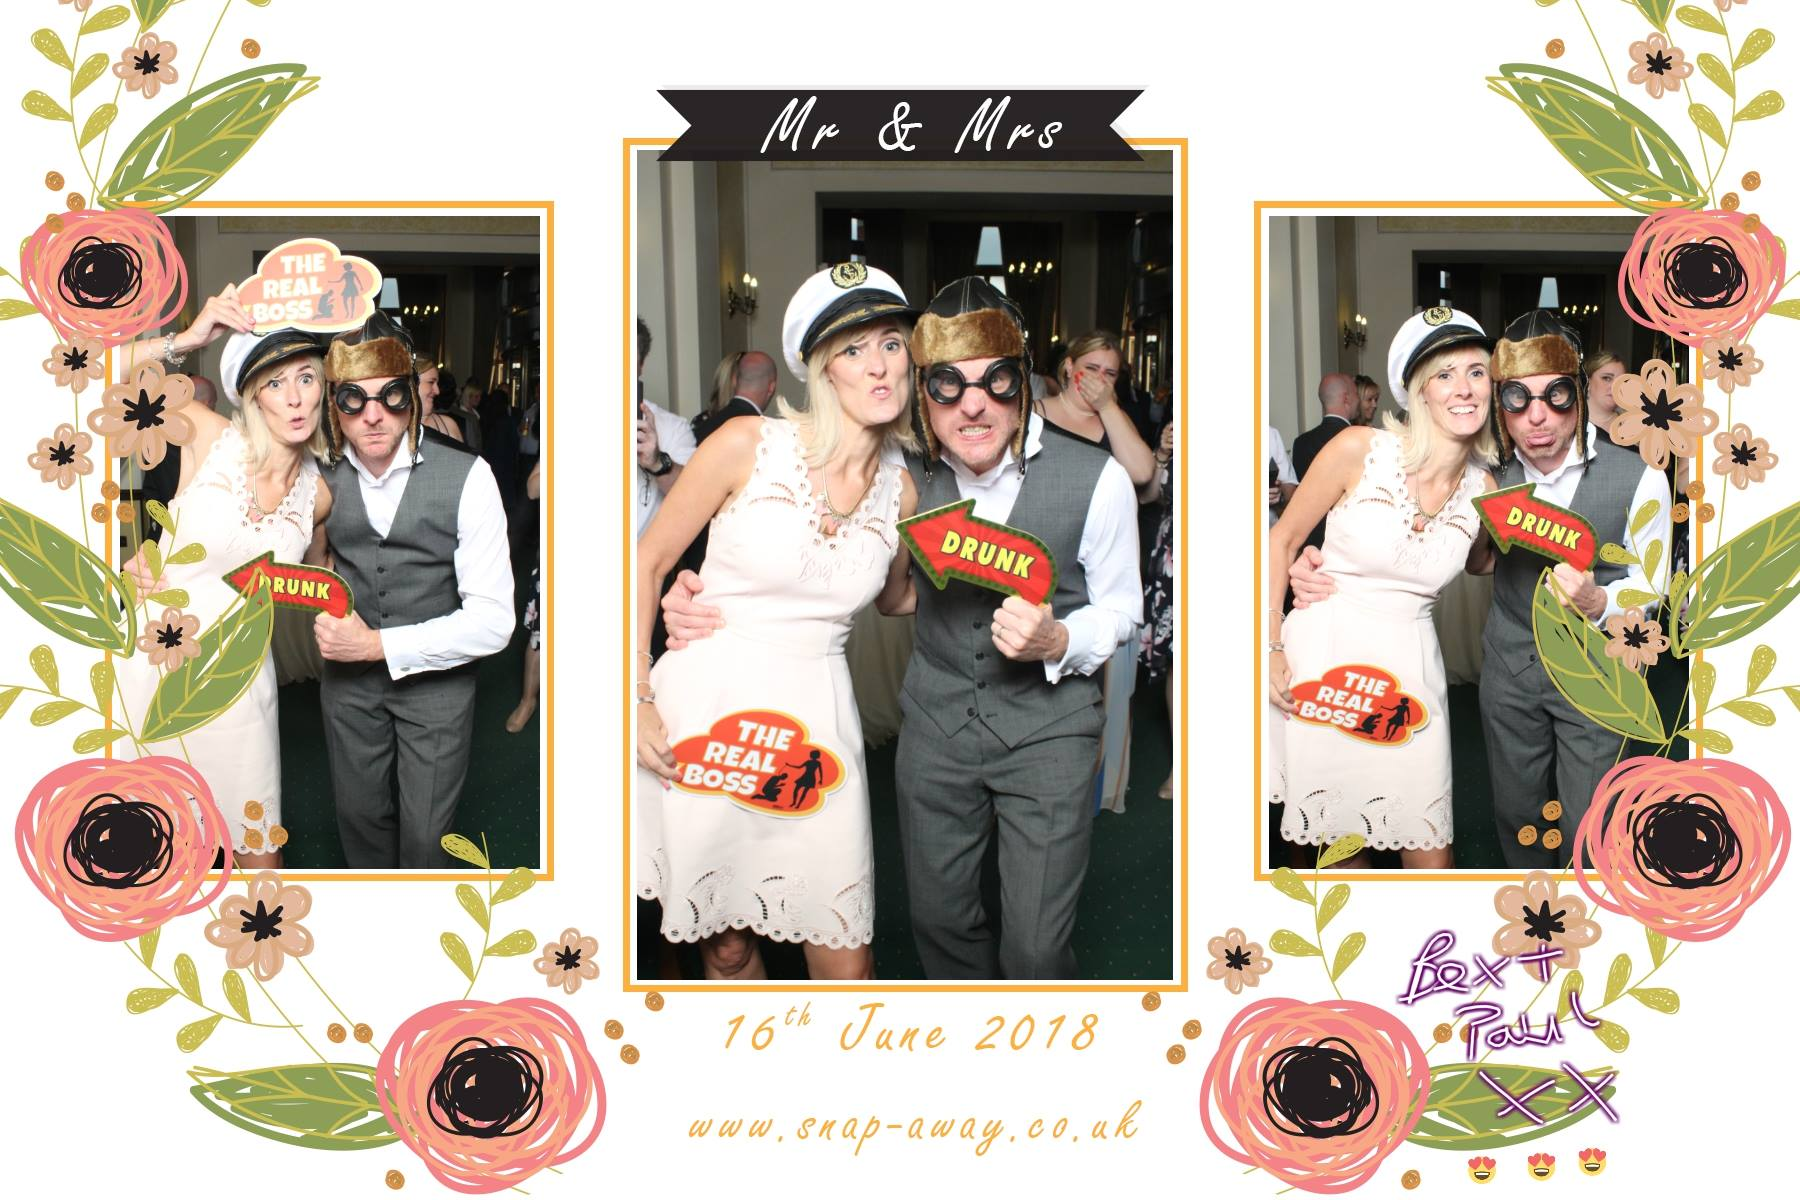 About Retro Mirror - Luxury Magic Mirror Photo Booth Hire